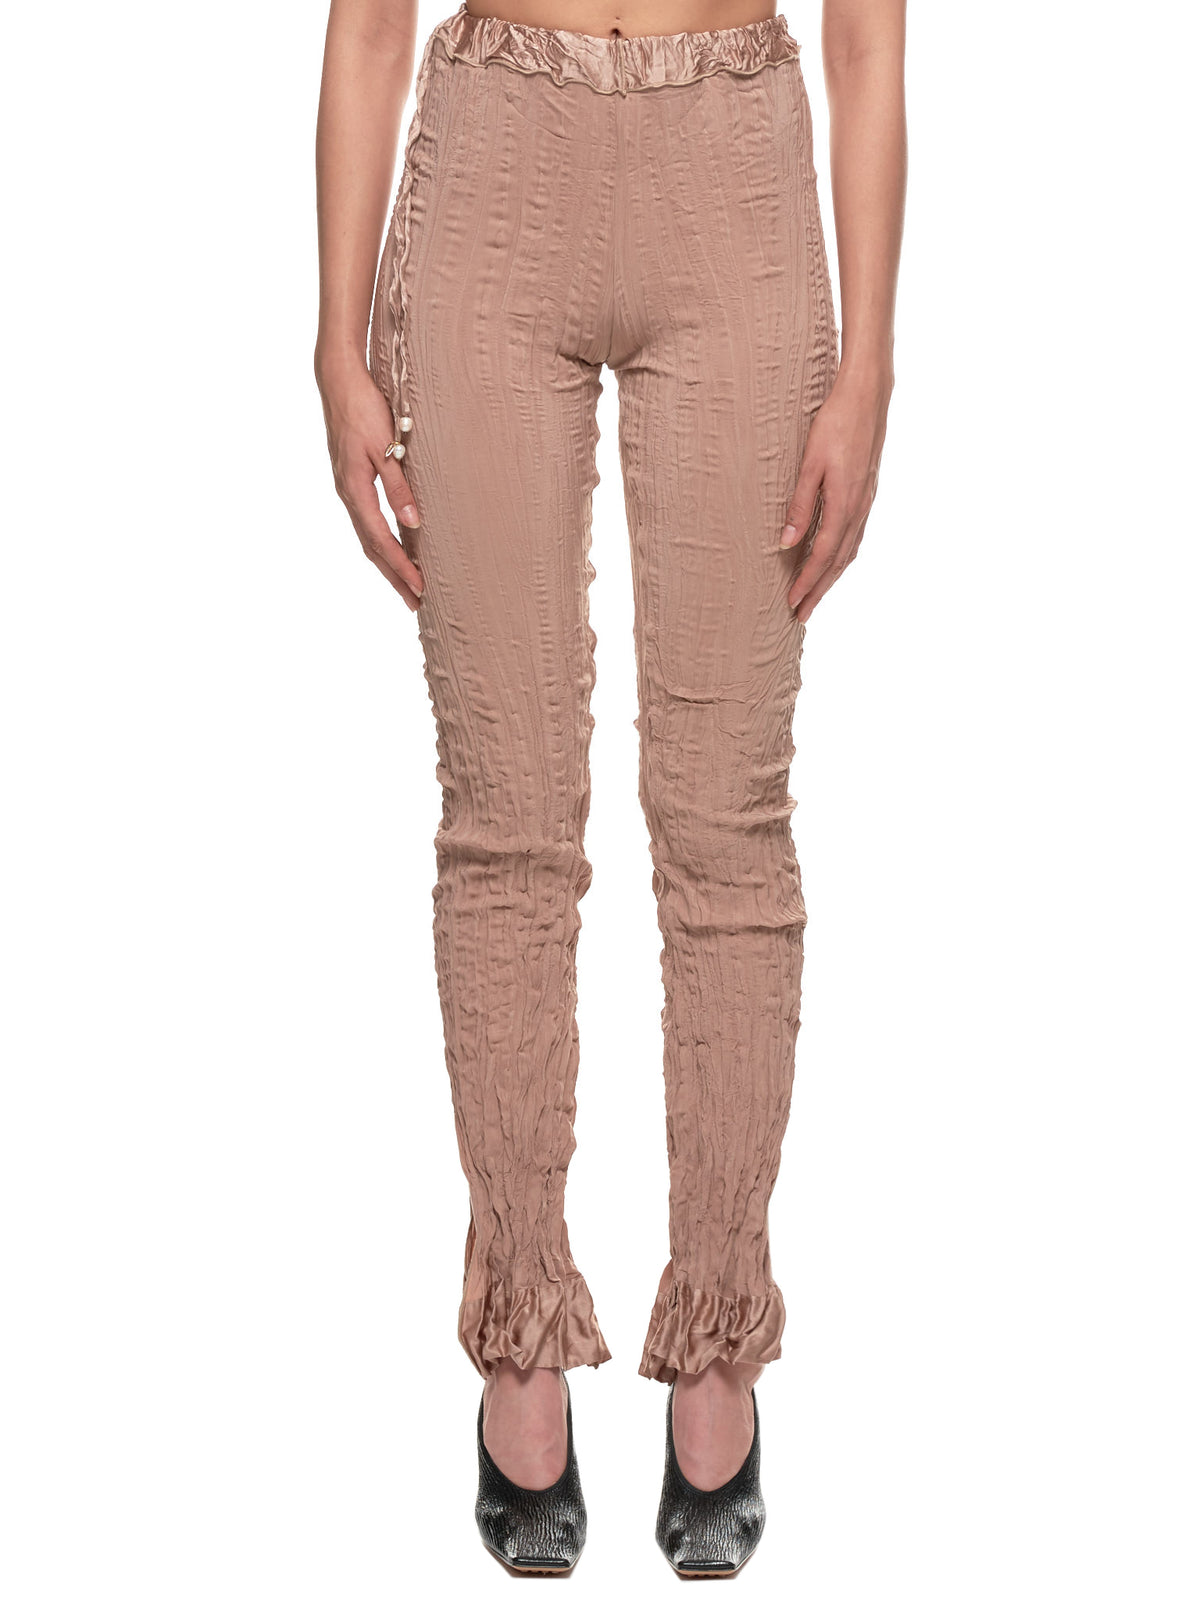 Crushed Elongated Trousers (716-S001-110-SAND)